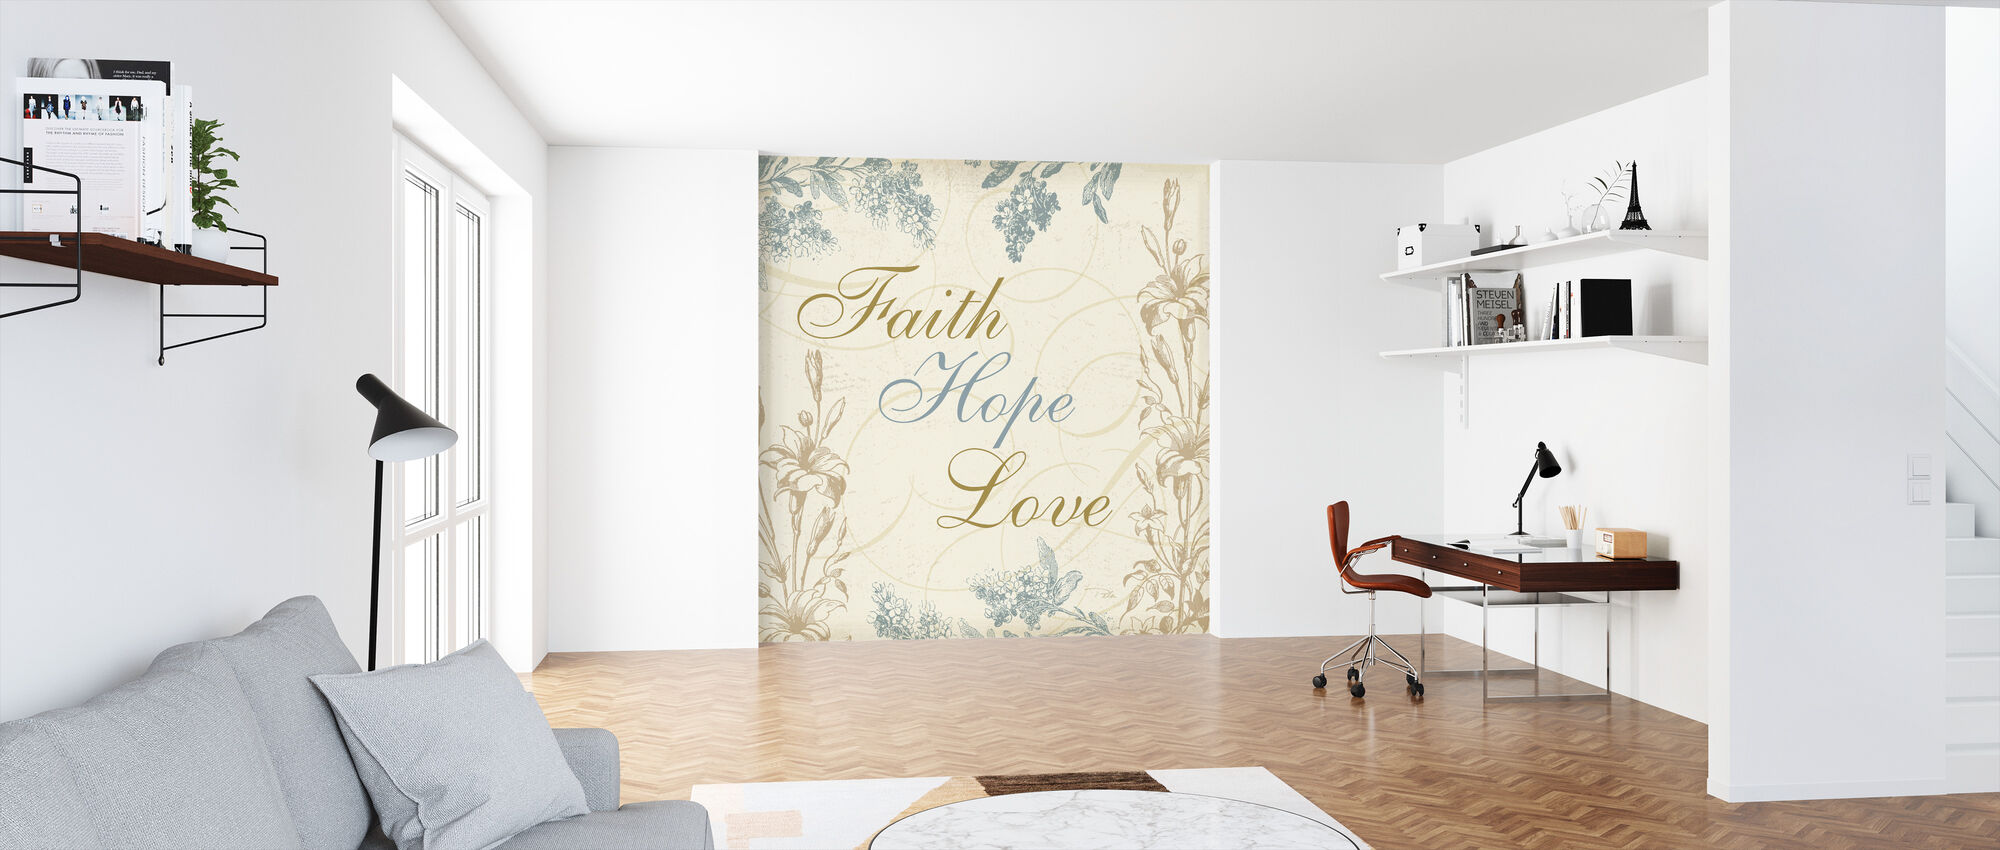 Faith Hope Love - Wallpaper - Office